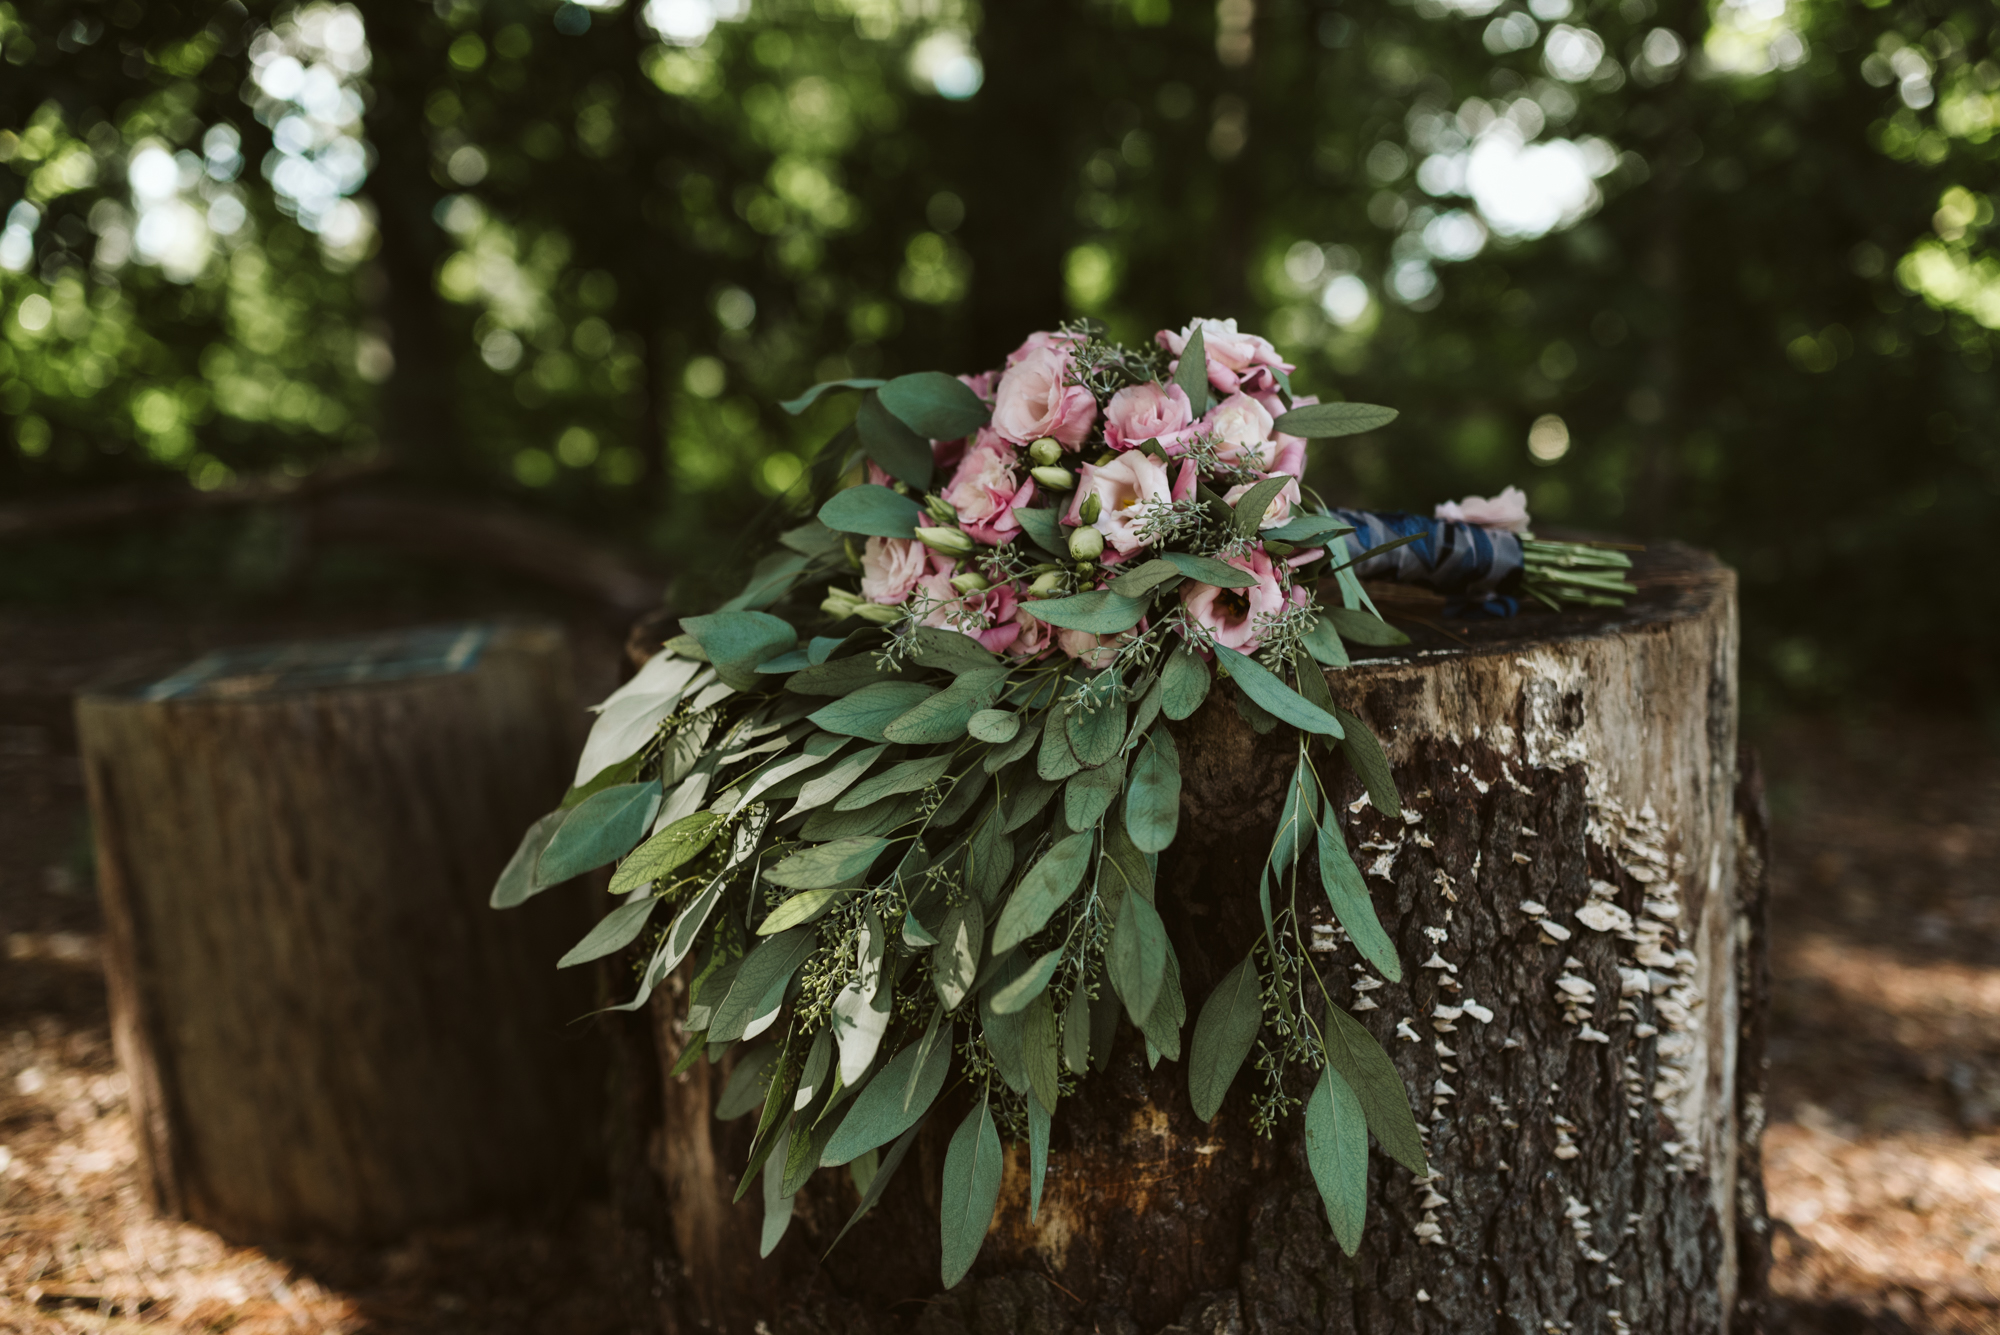 Pop-up Ceremony, Outdoor Wedding, Casual, Simple, Lake Roland, Baltimore, Maryland Wedding Photographer, Laid Back, DIY Flowers, Bouquet with Eucalyptus and Lisianthus, September Wedding